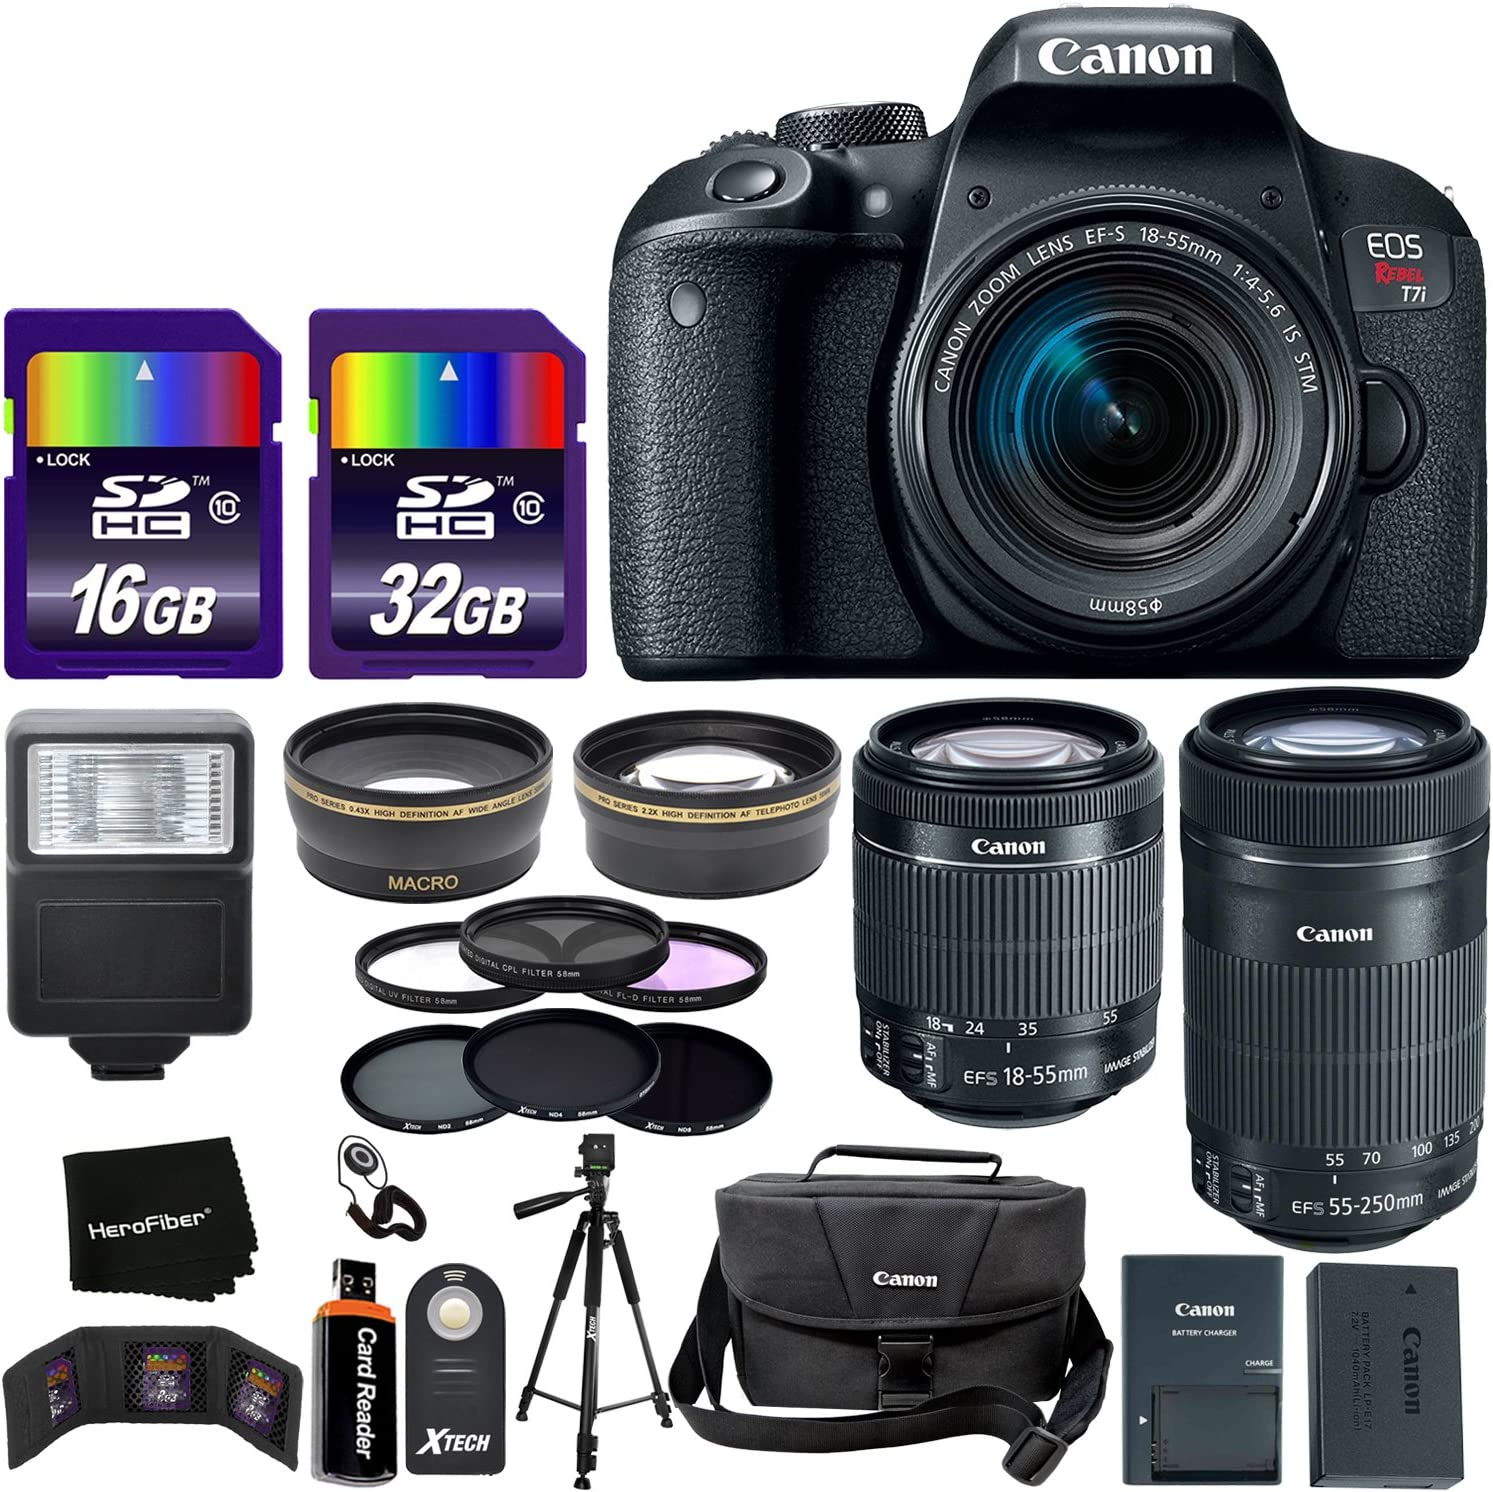 Amazon.com: Canon EOS Rebel T7i - Cámara réflex digital ...